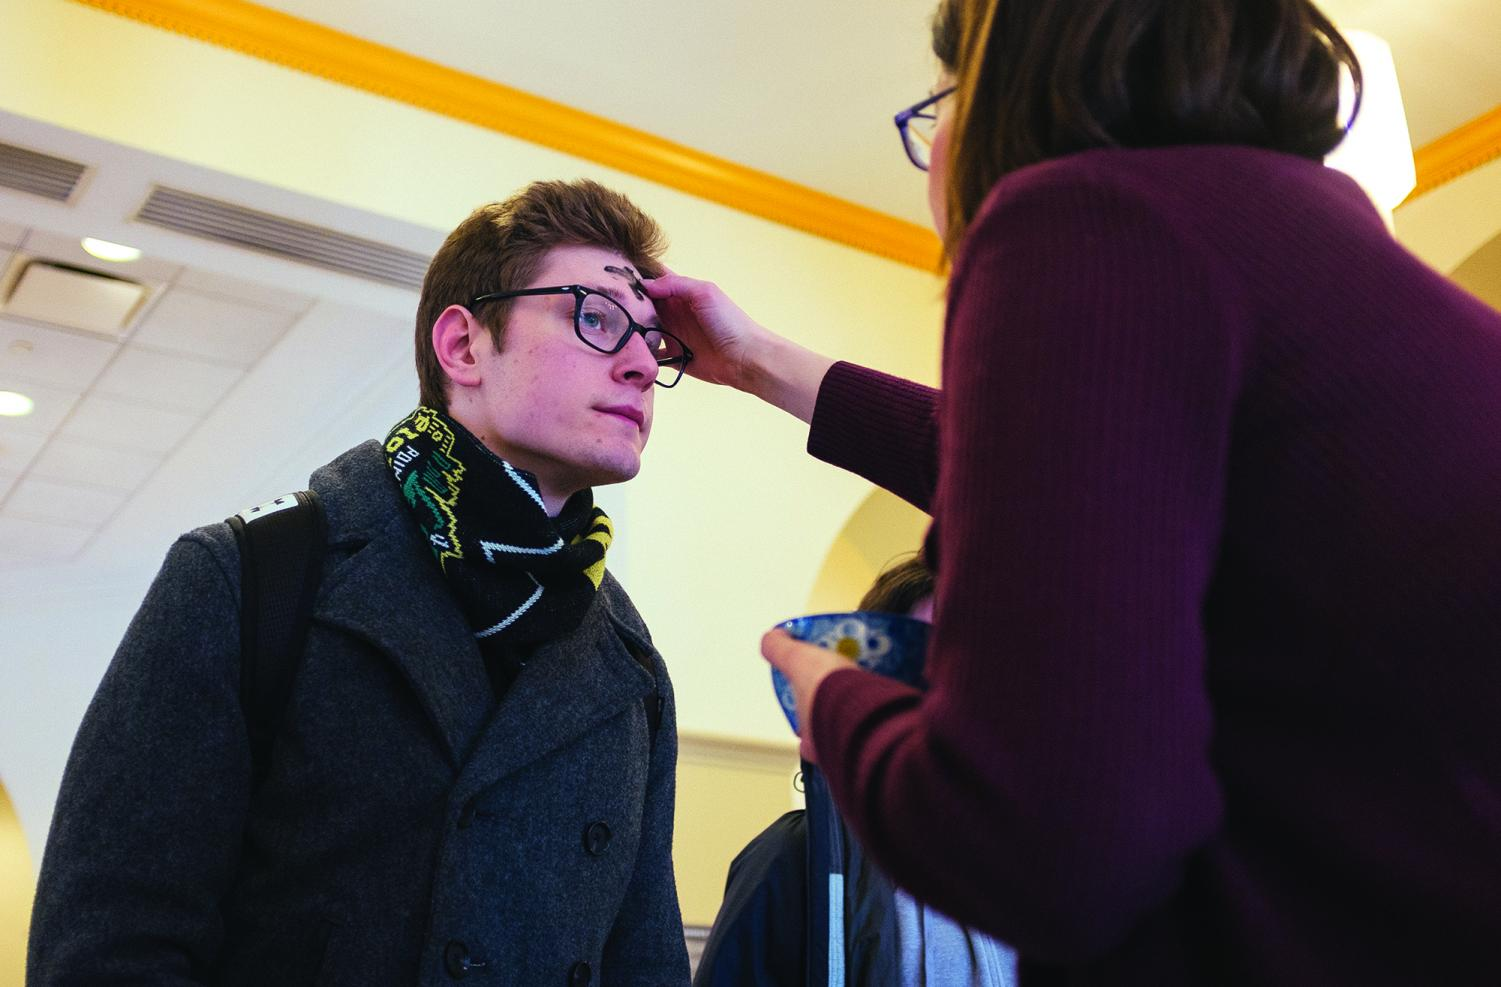 Nick Poprocky, senior public relations major, receives ashes for Ash Wednesday, the start of Lent, in the Lawrence Hall lobby from Pastor Jennifer McCurry.